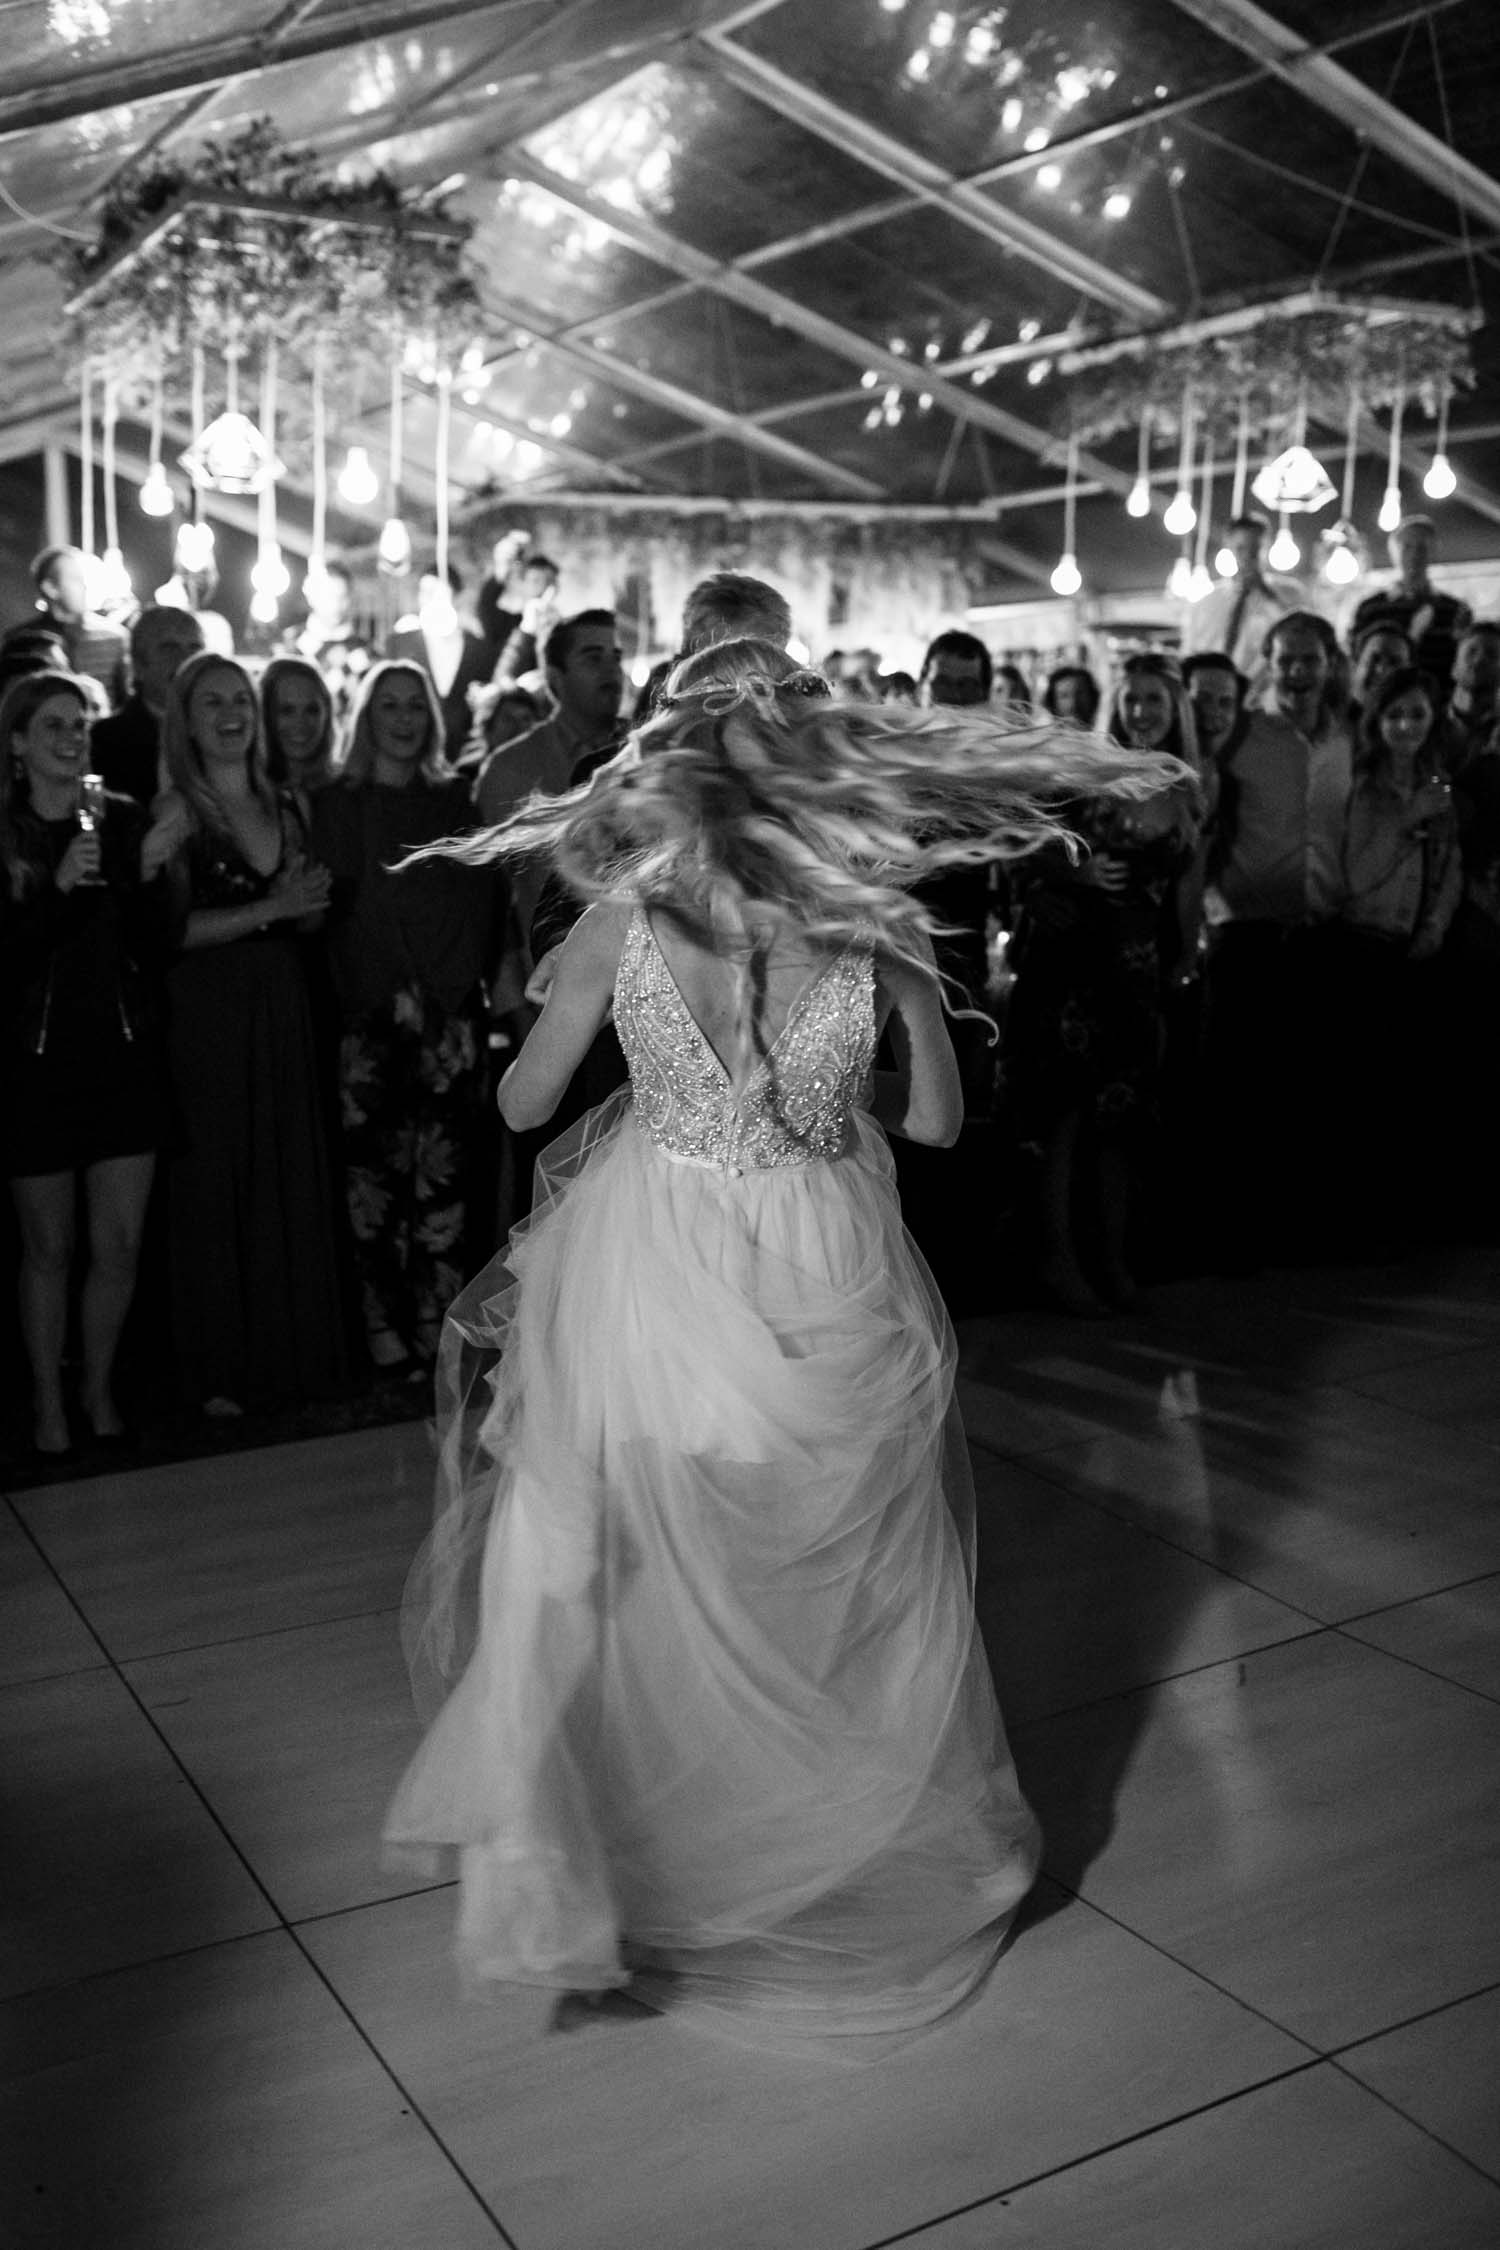 Bride and groom's first dance surrounded by their family and friends